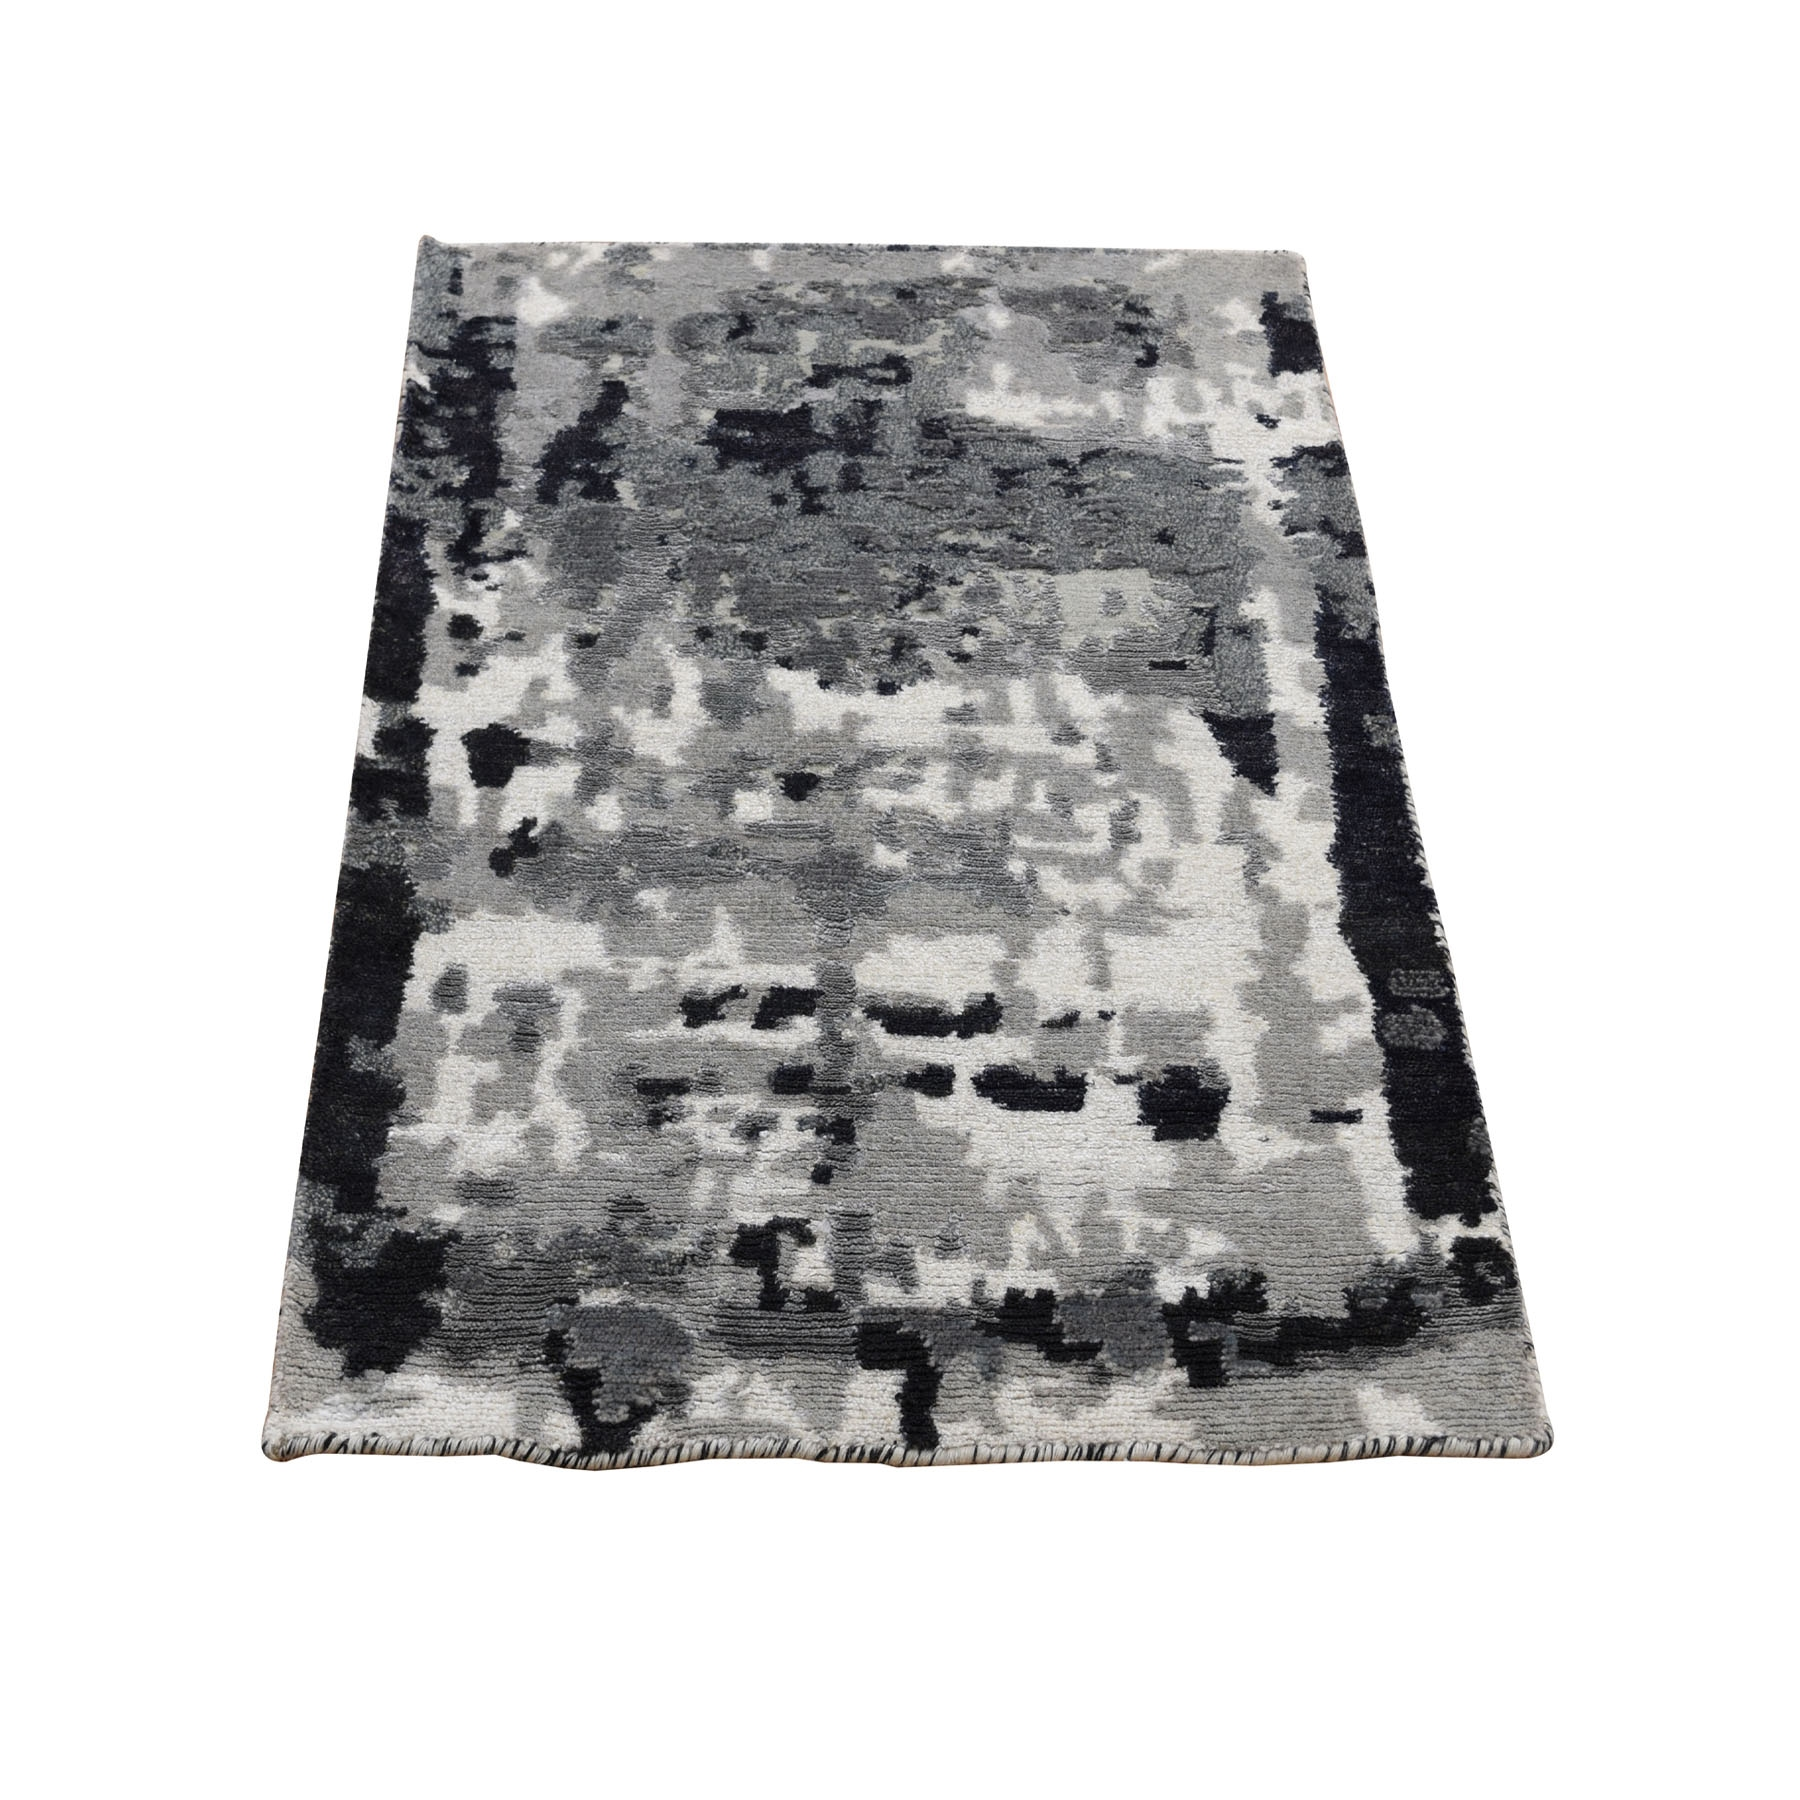 2'X3' Black Abstract Design Hi-Lo Pile Wool And Silk Hand Knotted Oriental Rug moad8aad